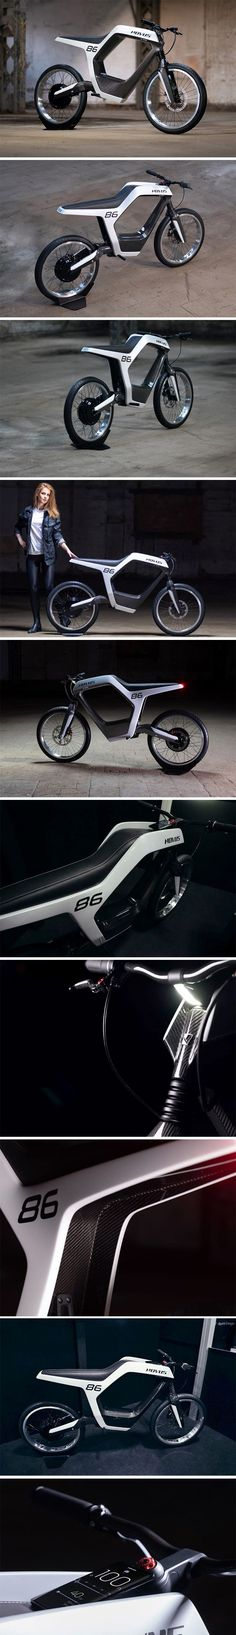 Minimal, and extremely lightweight, the Novus e-motorcycle boasts of an incredibly sleek outline of a frame that houses everything within it, from the battery and motor, to the suspension, to even the headlight and taillight, which are built flush into the form of the motorcycle. Despite this gravity-defying form, the Novus comes with a top speed of 60 mph and a range of 60 miles on a full charge.